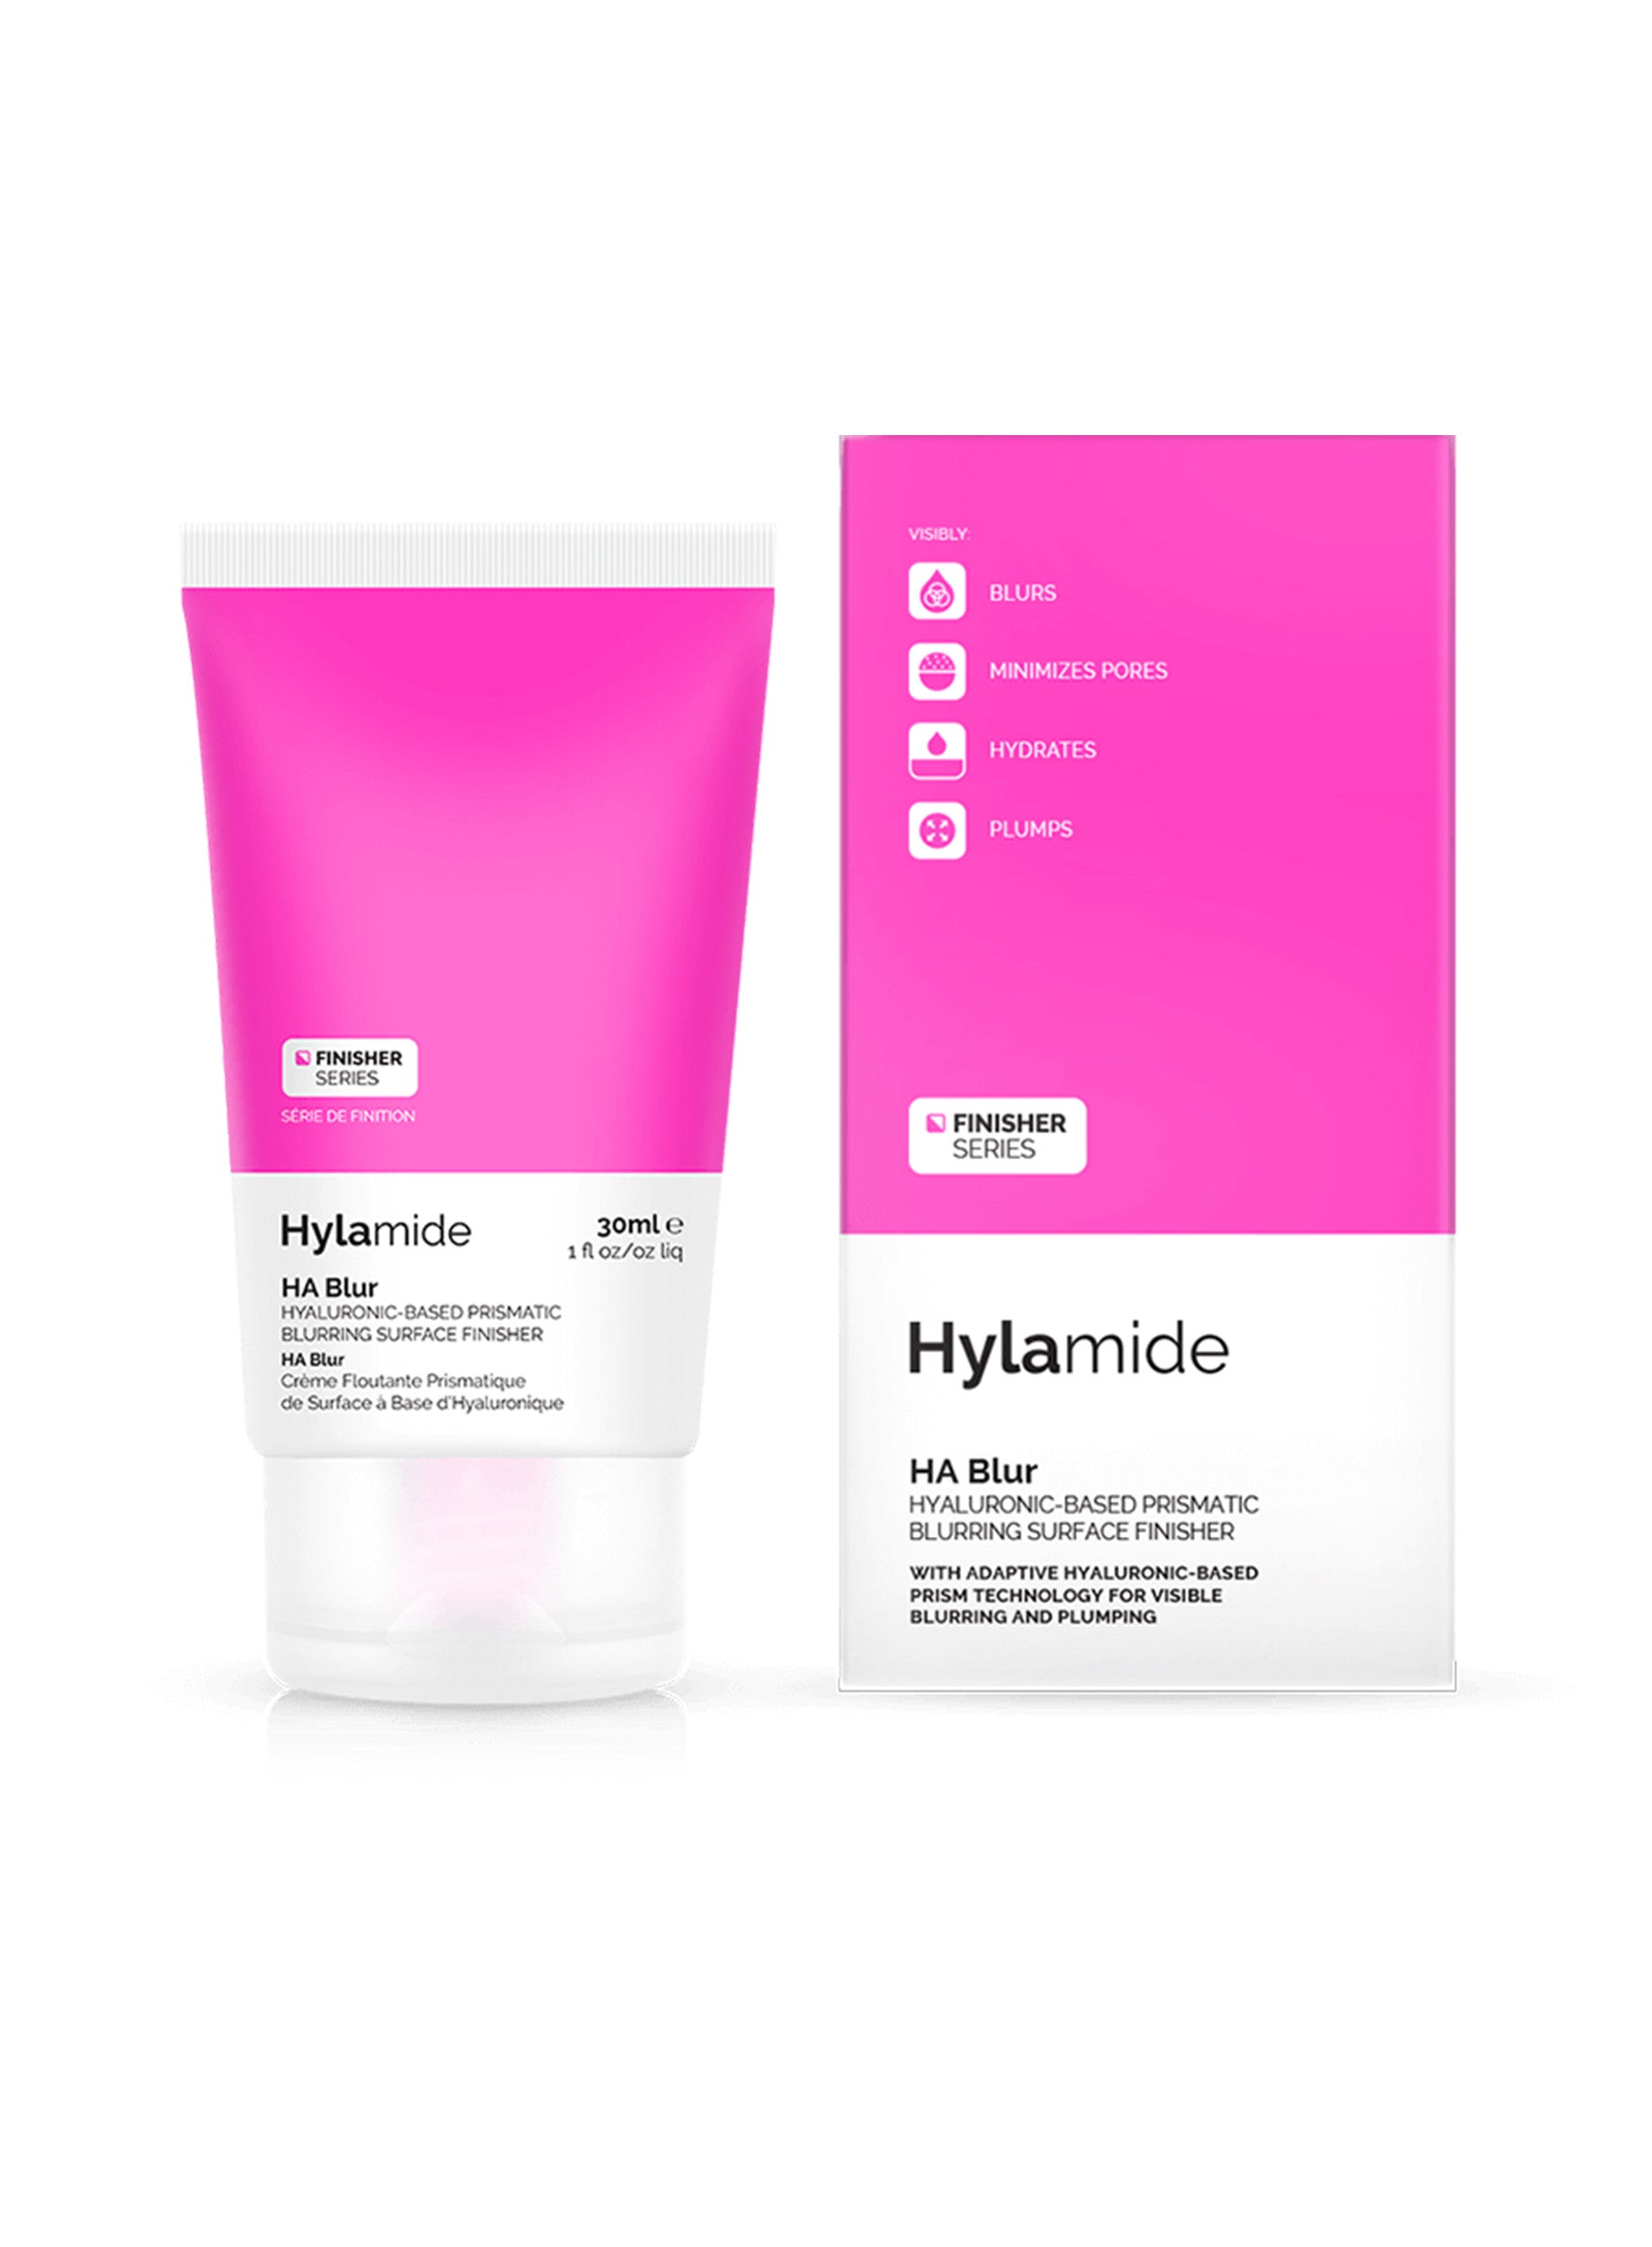 Hylamide Finisher HA Blur 30ml